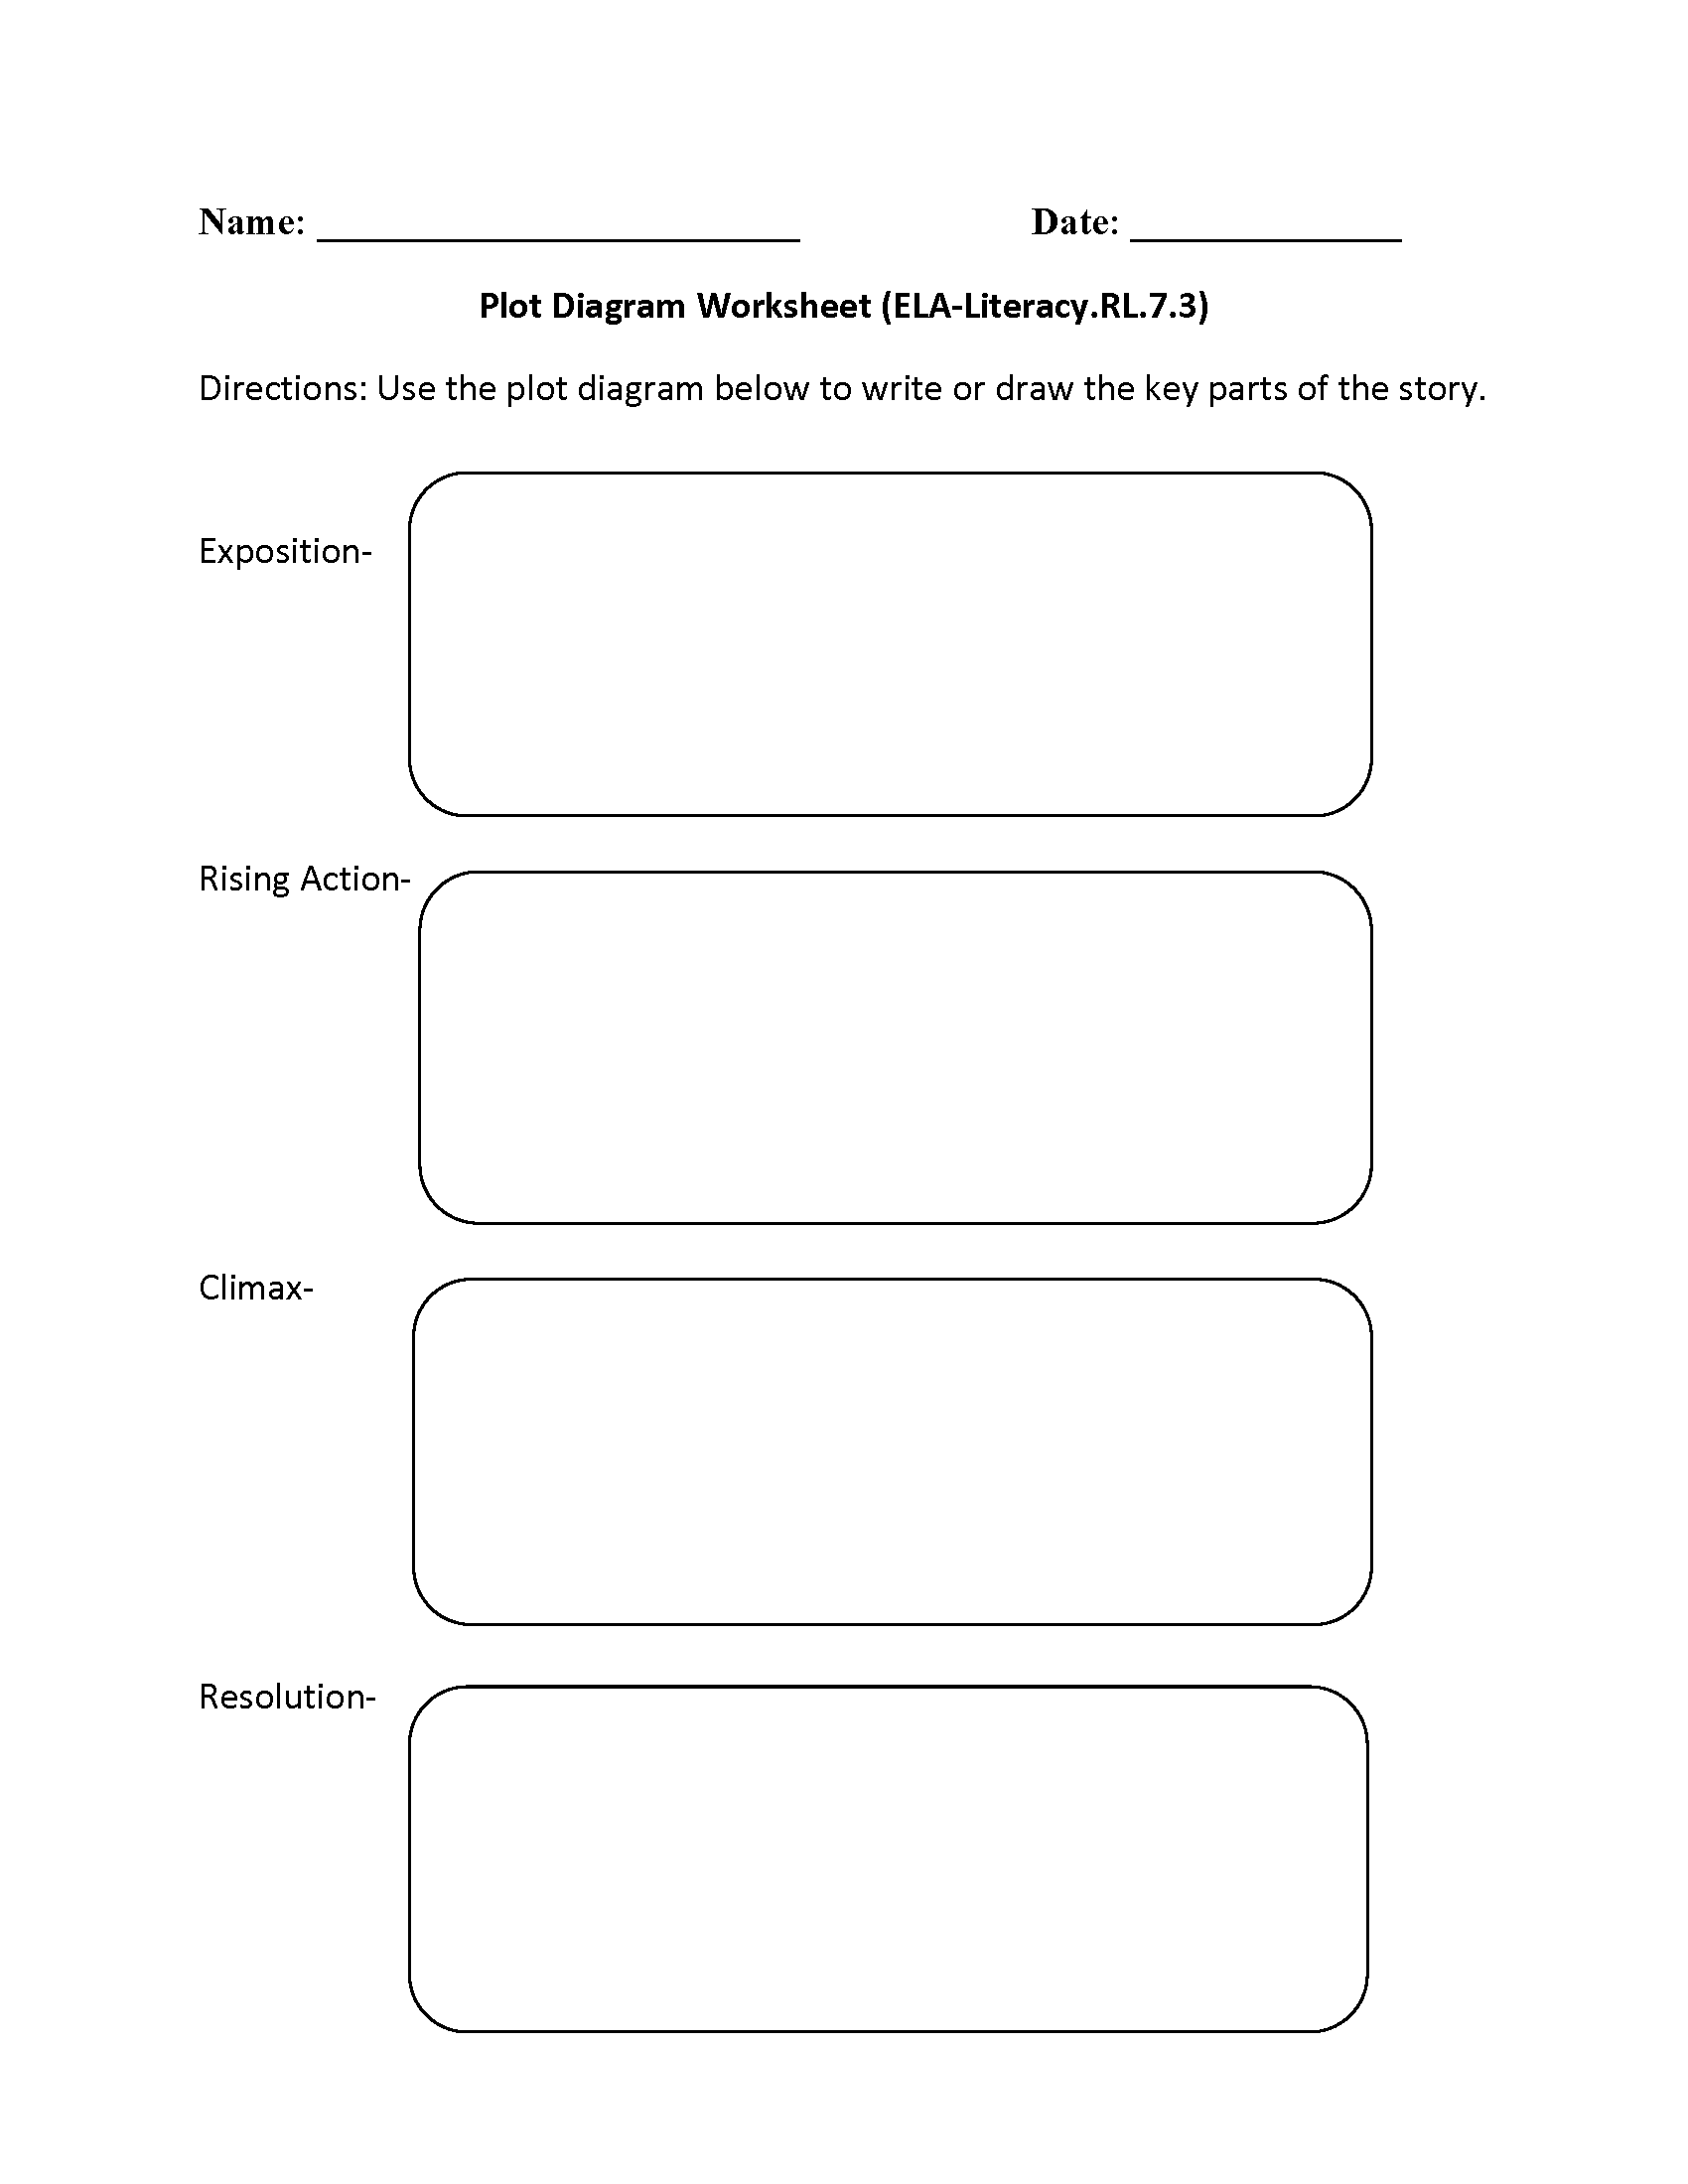 worksheet Plot Development Worksheet 7th grade common core reading literature worksheets plot diagram ela literacy rl 7 3 worksheet